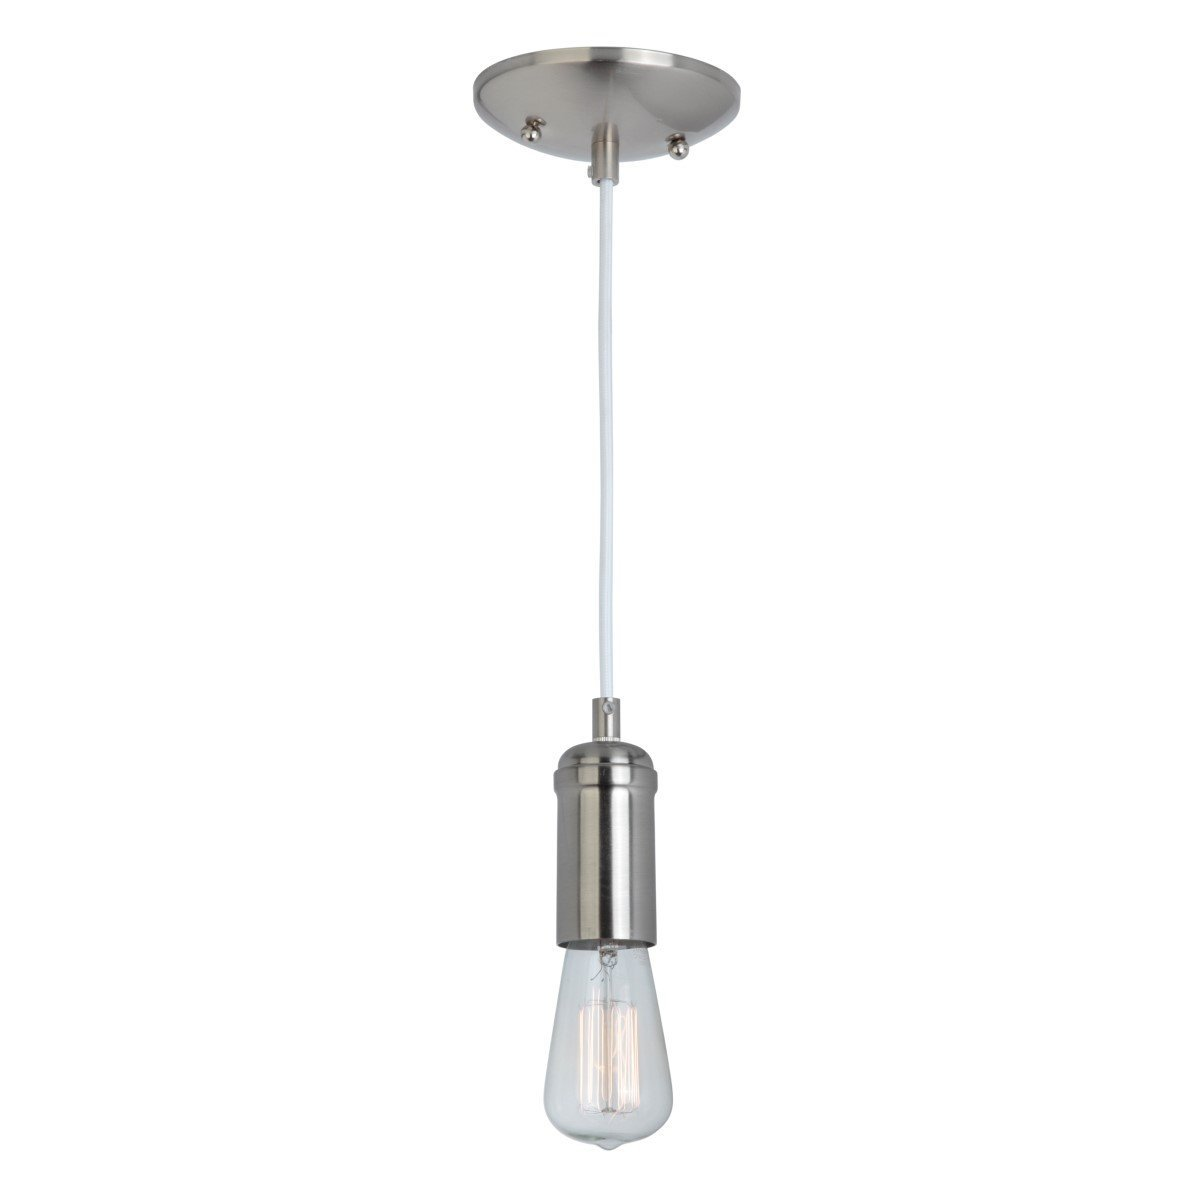 Globe Electric 1-Light Vintage Edison Mini Pendant, White Designer Woven Fabric Cord, Brushed Steel Finish, 65181